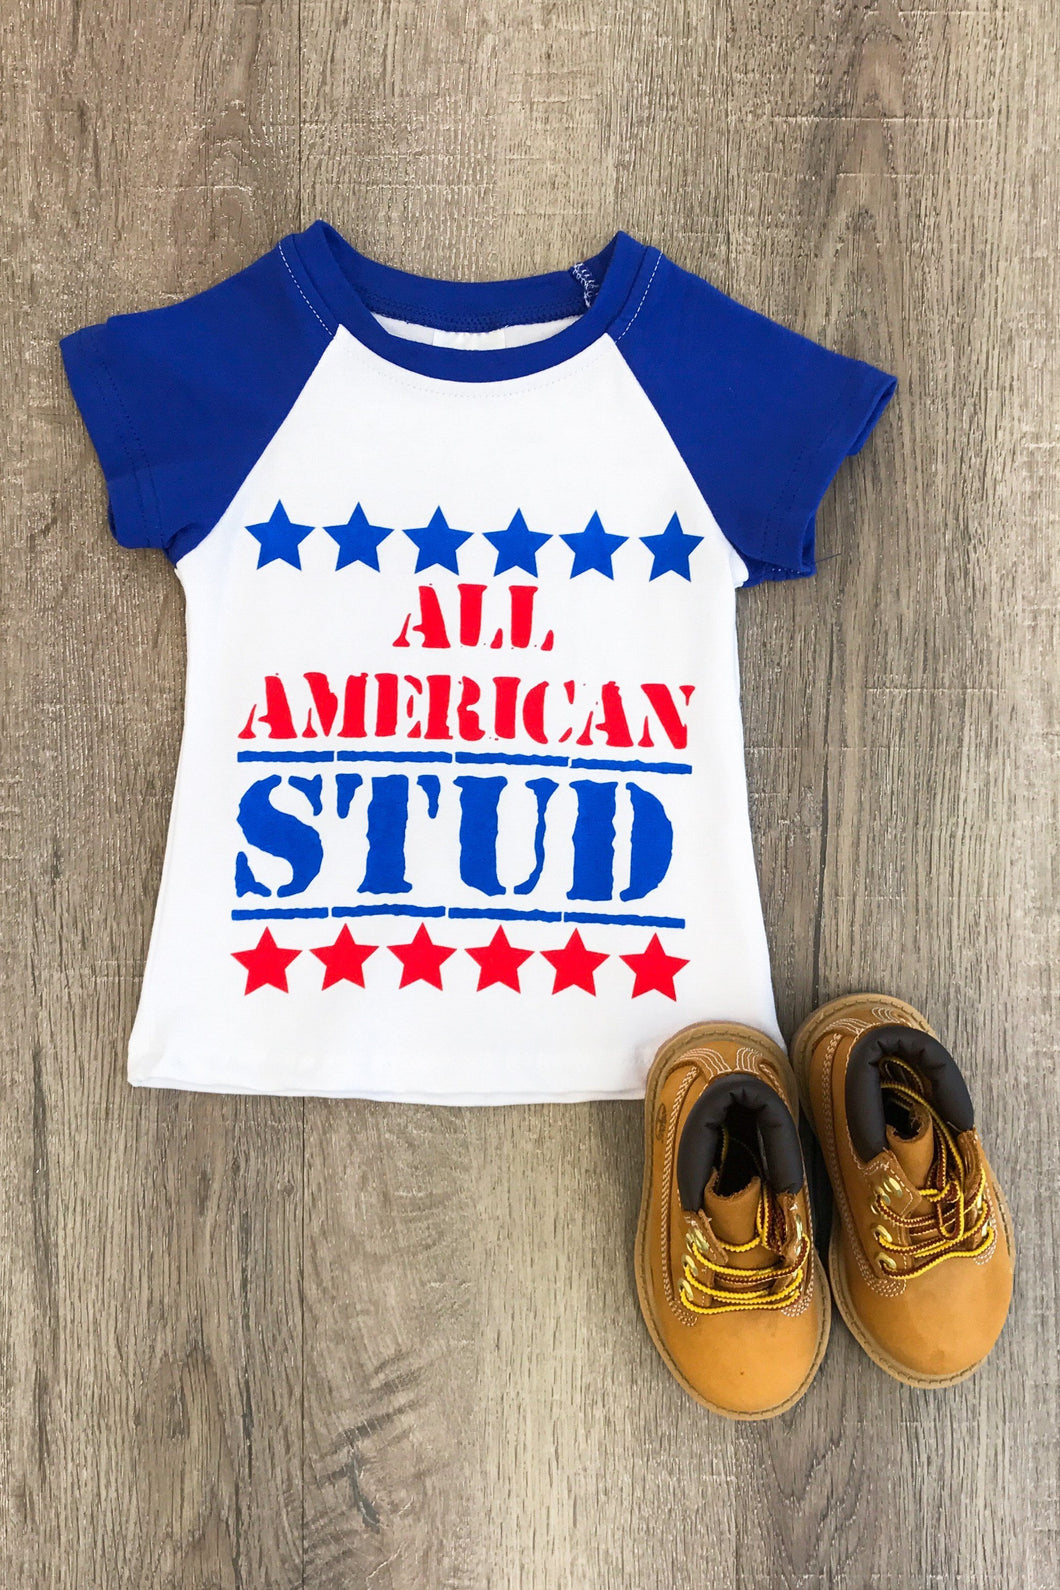 All American Stud T-Shirt